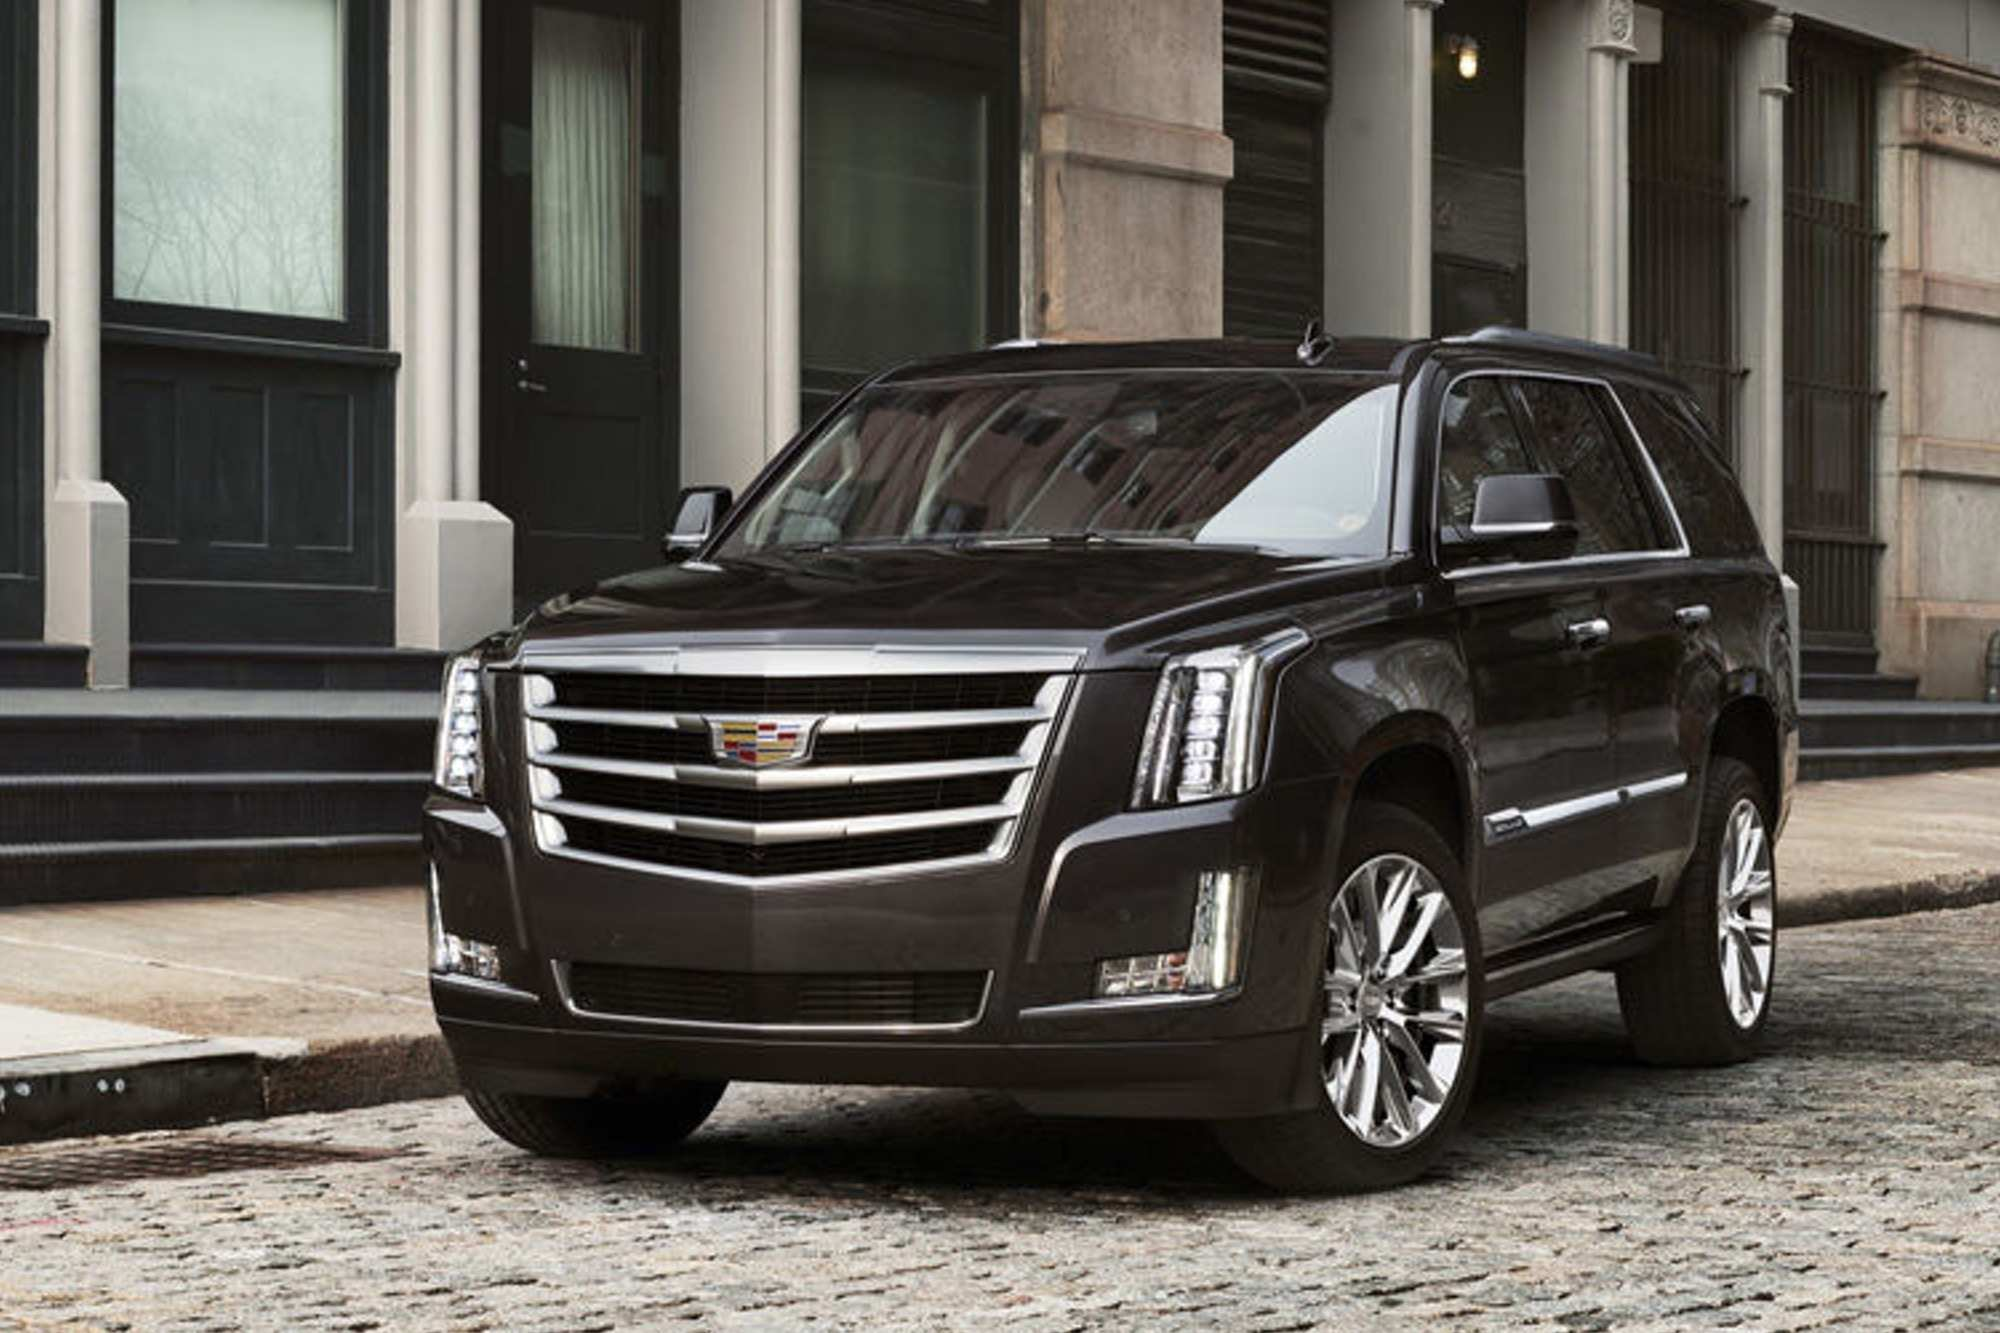 33 All New 2020 Cadillac Escalade For Sale Research New with 2020 Cadillac Escalade For Sale